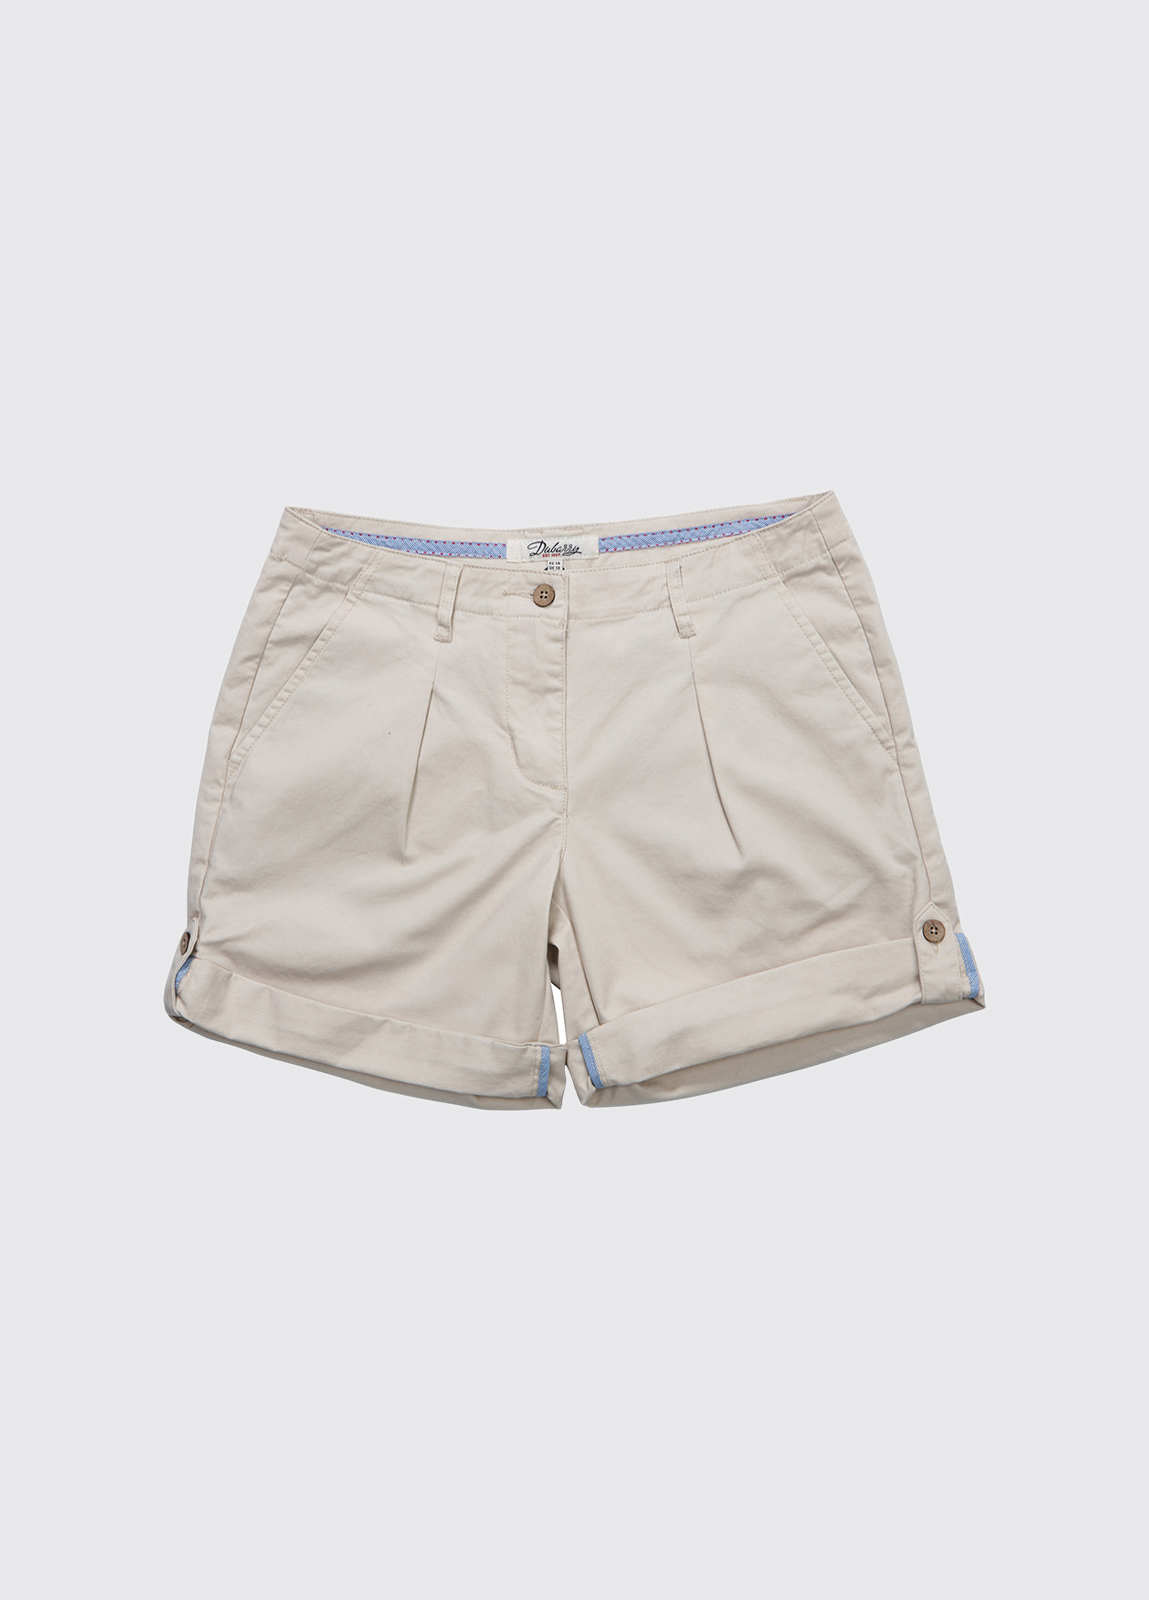 Summerhill ladies shorts - Oyster